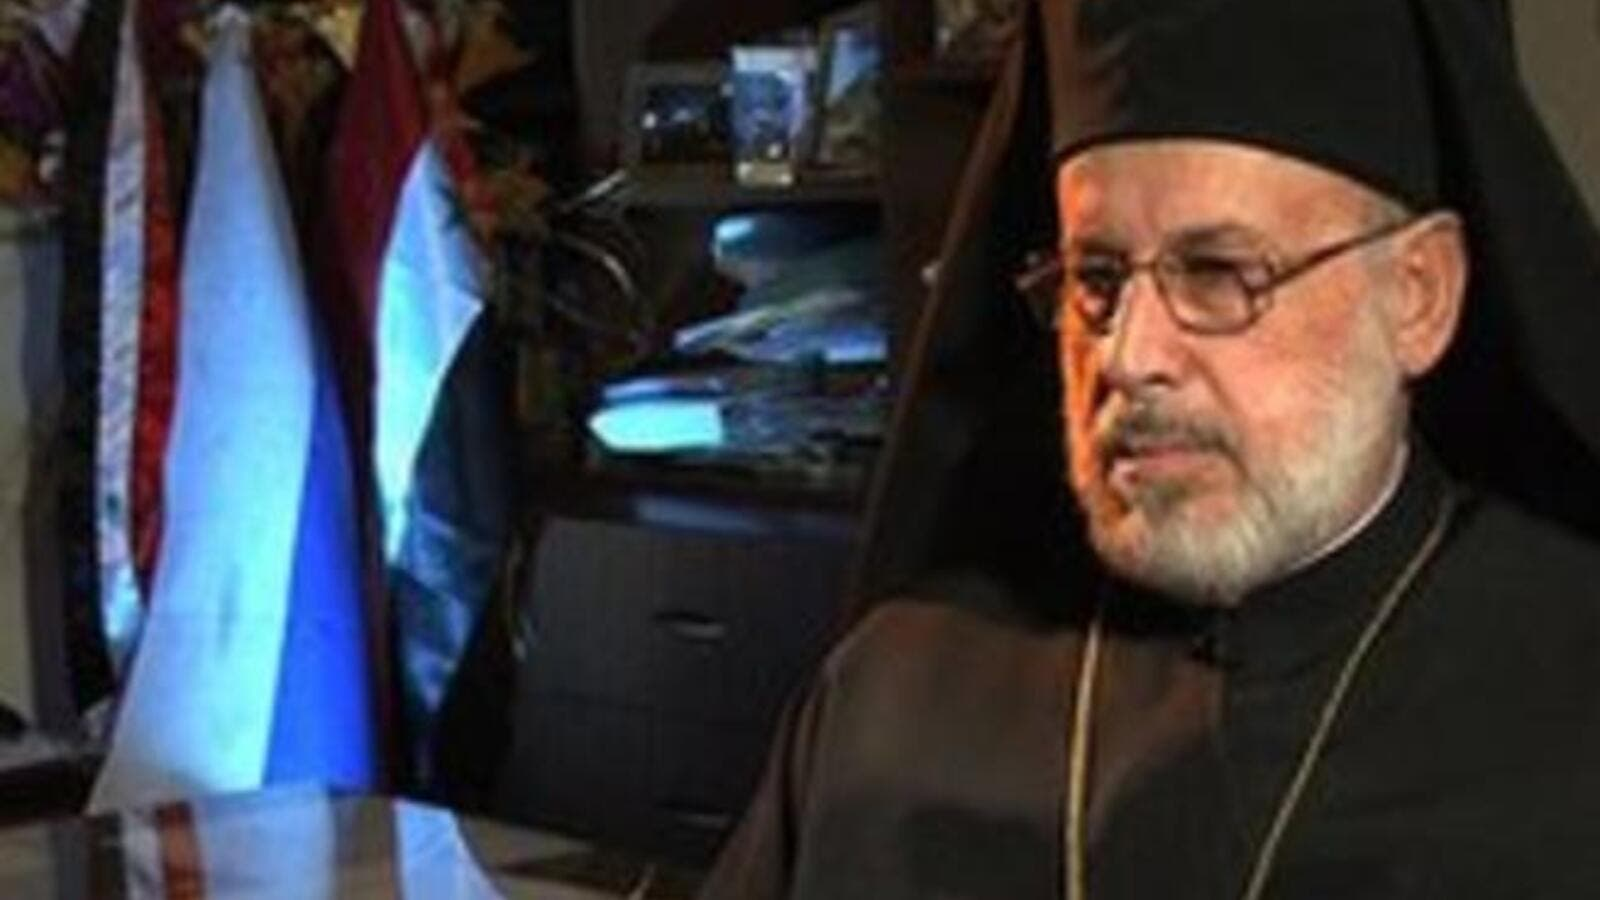 Auxiliary Bishop at the Greek Orthodox Patriarchate of Antioch and All the East Luqa al-Khoury declared war on the Syrian rebels. [pravoslavie]